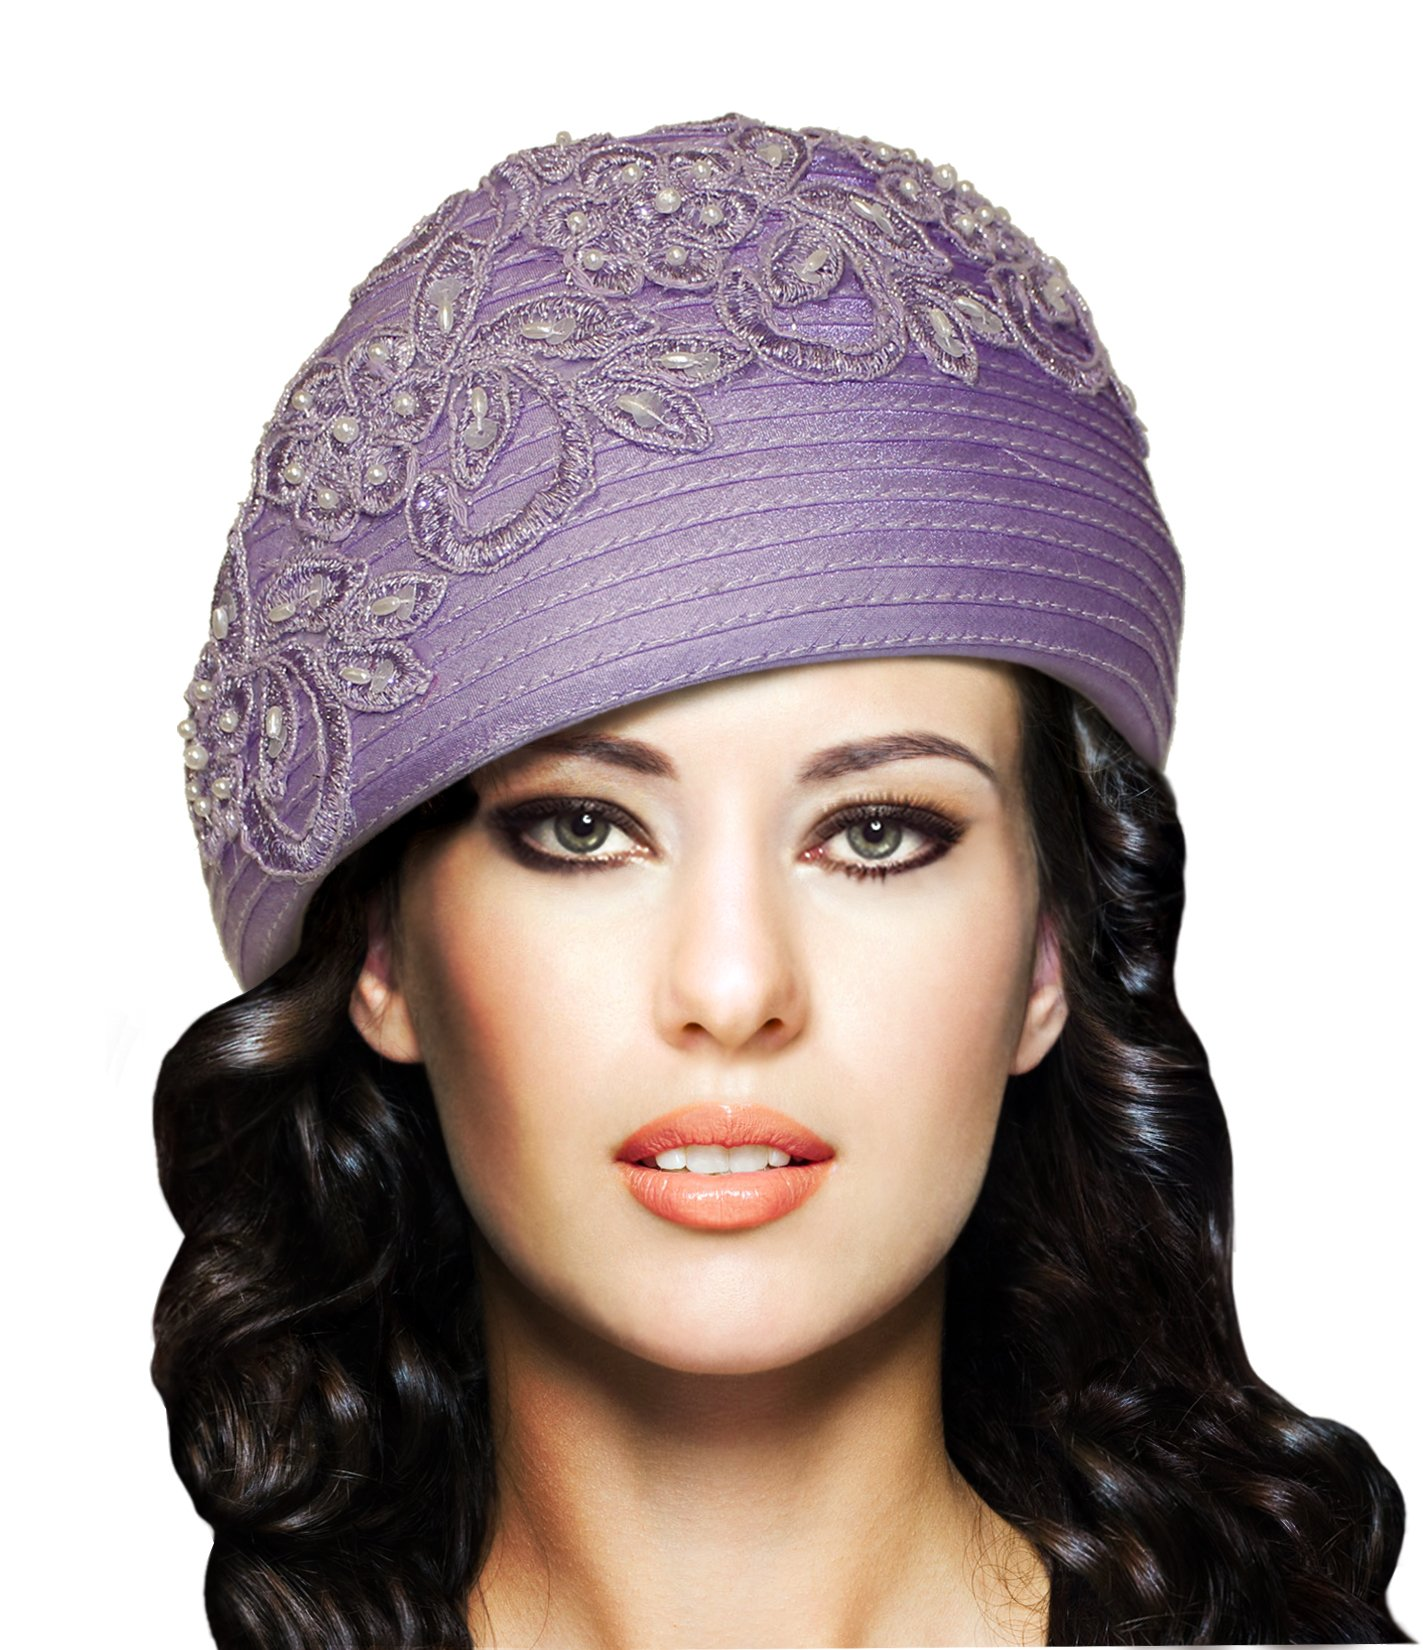 Mr. Song Millinery Beret Cloche Hat with Premium Lace - Q62 (Lavender) by Mr. Song Millinery